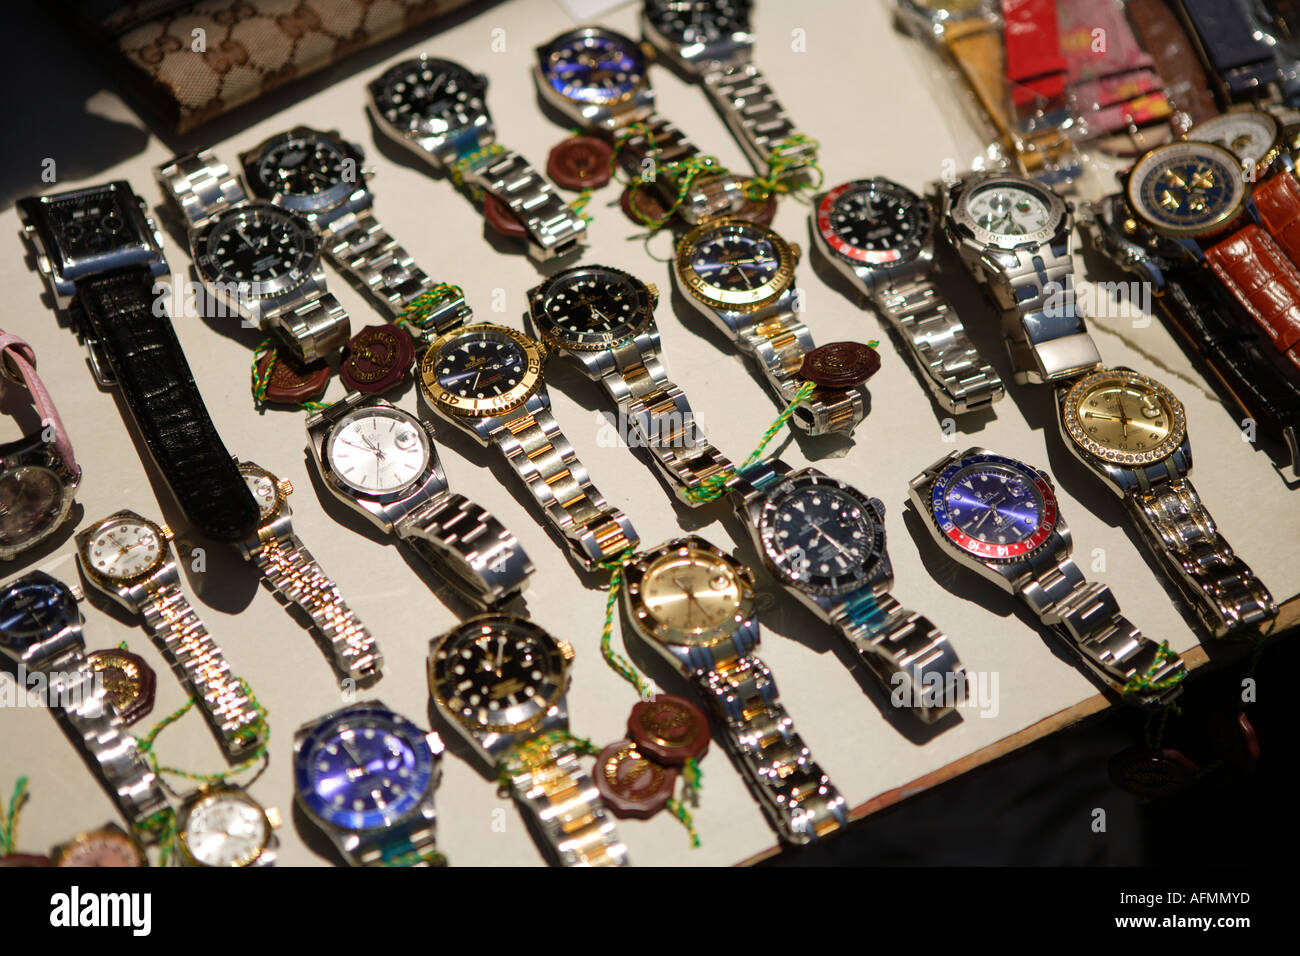 Fake Rolex watches for sale at the Straw Market, Downtown